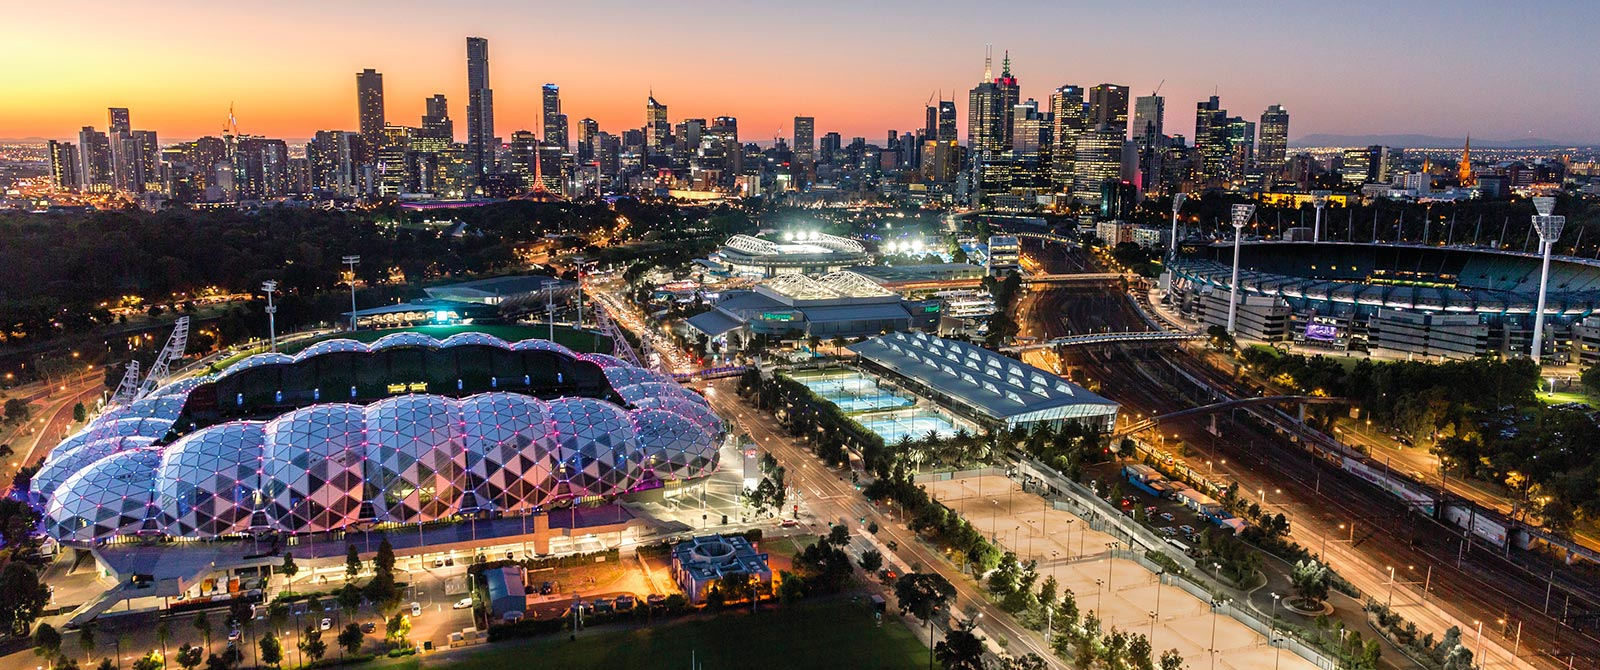 Australian Open 2022 Official Travel Packages